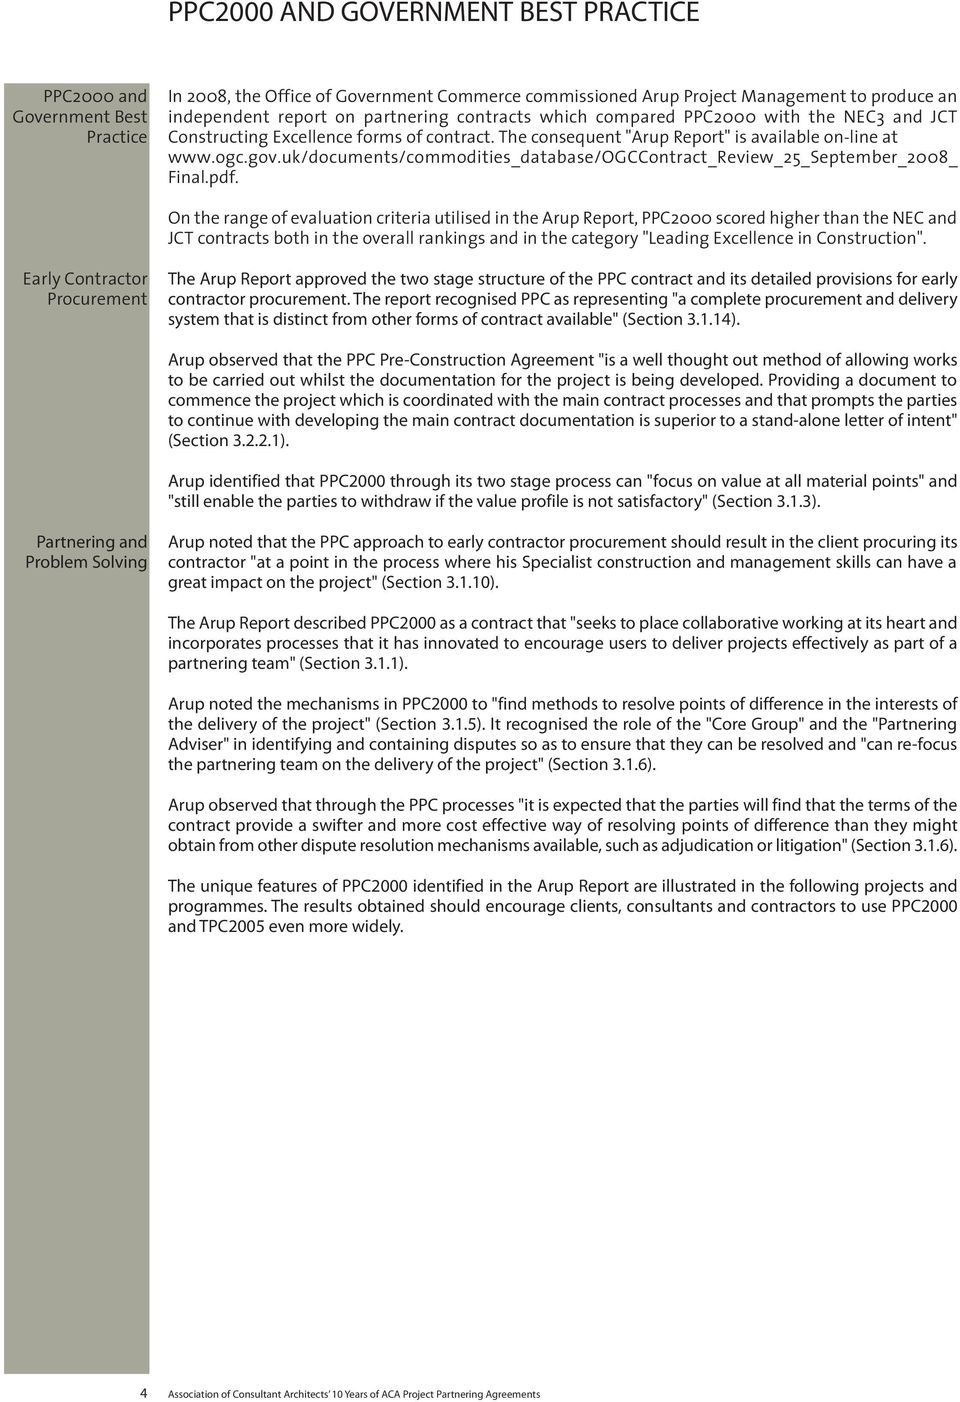 uk/documents/commodities_database/ogccontract_review_25_september_2008_ Final.pdf.